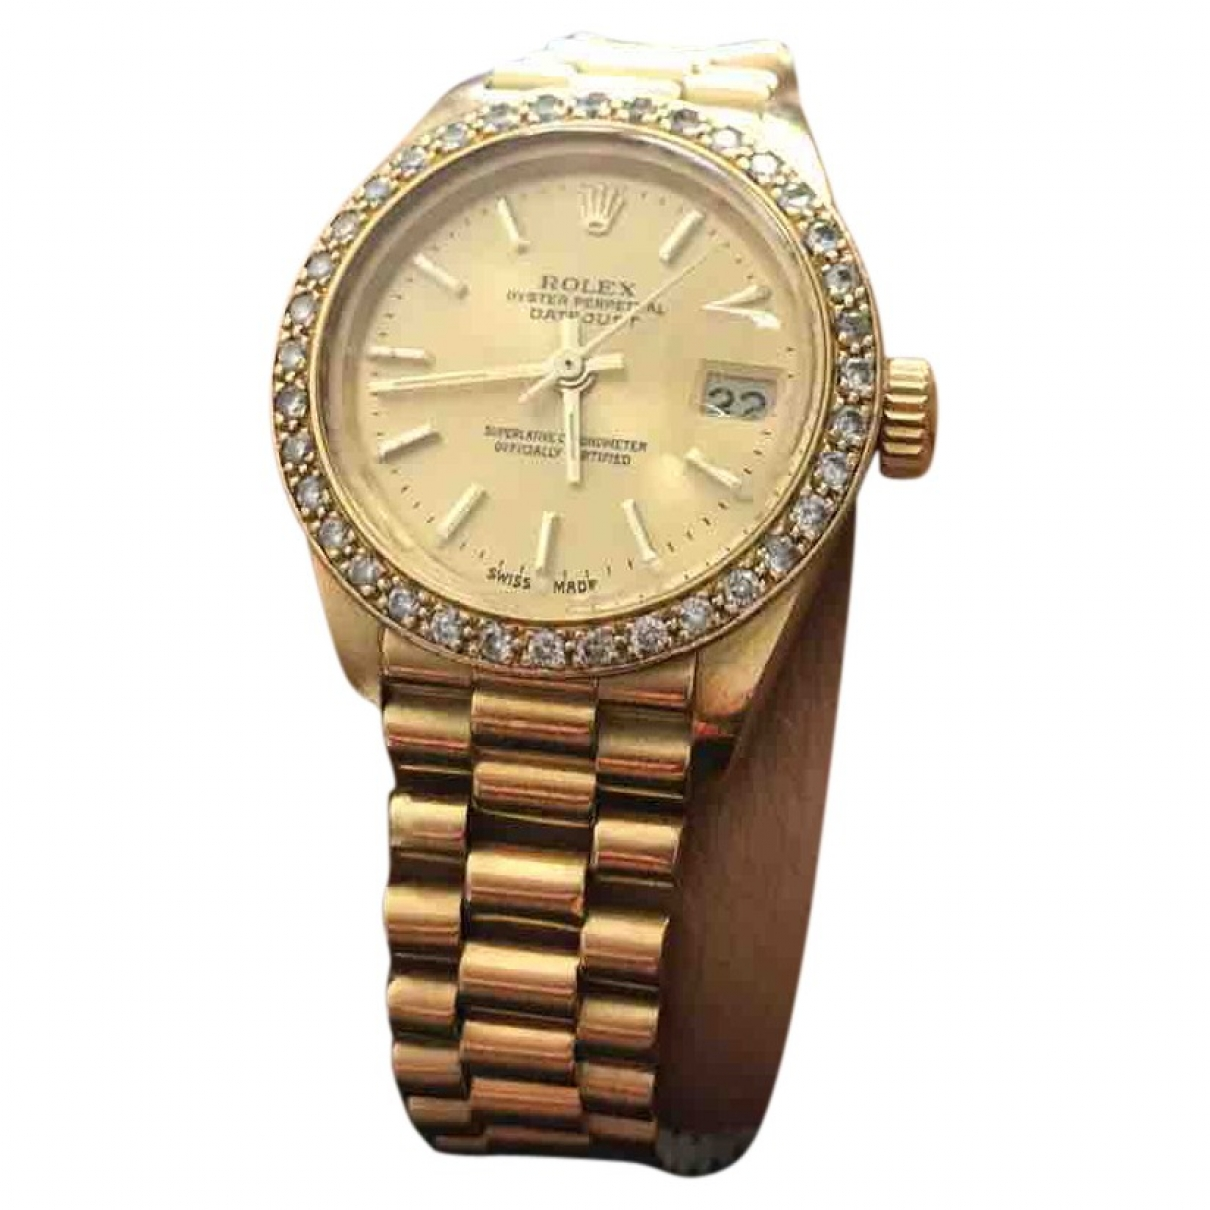 Reloj Lady DateJust 28mm de Oro amarillo Rolex